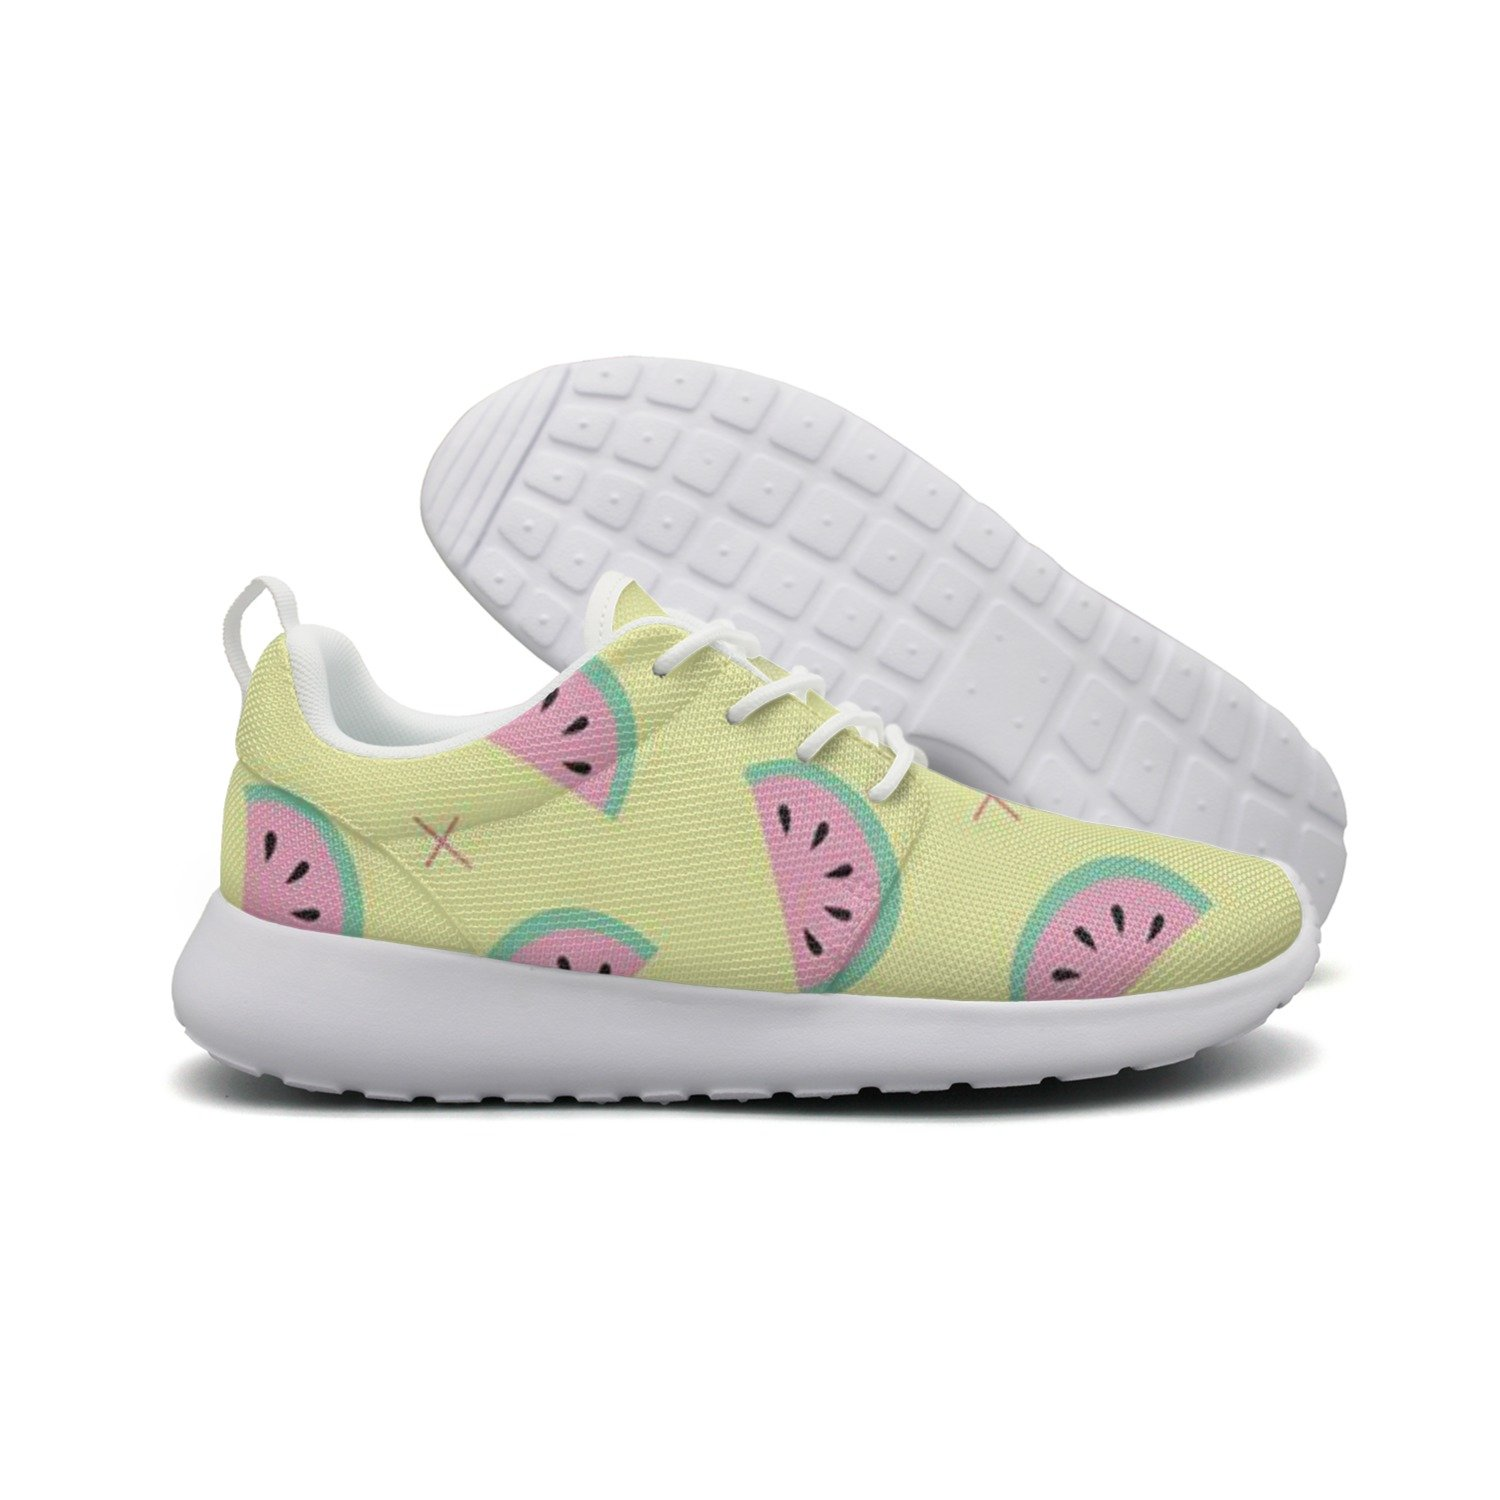 Women's Sweet Watermelon Life Jogging Shoes Fashion Sneakers Walking Shoes